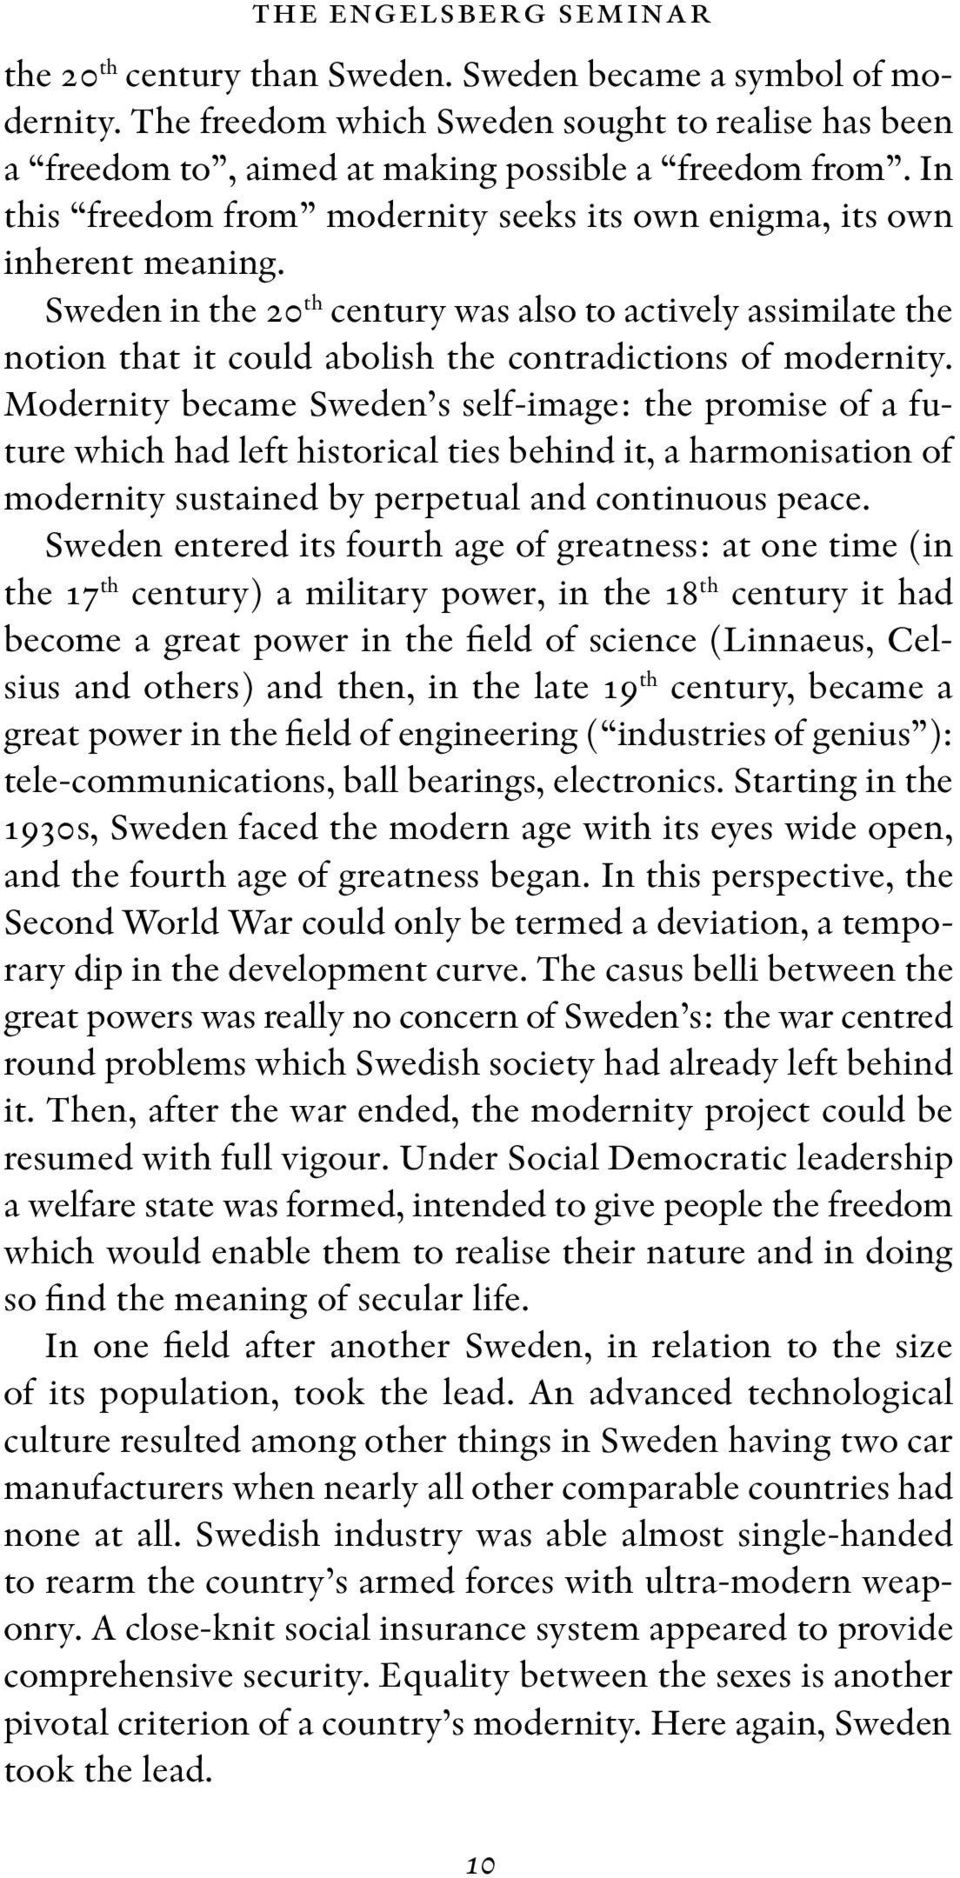 Sweden in the 20 th century was also to actively assimilate the notion that it could abolish the contradictions of modernity.